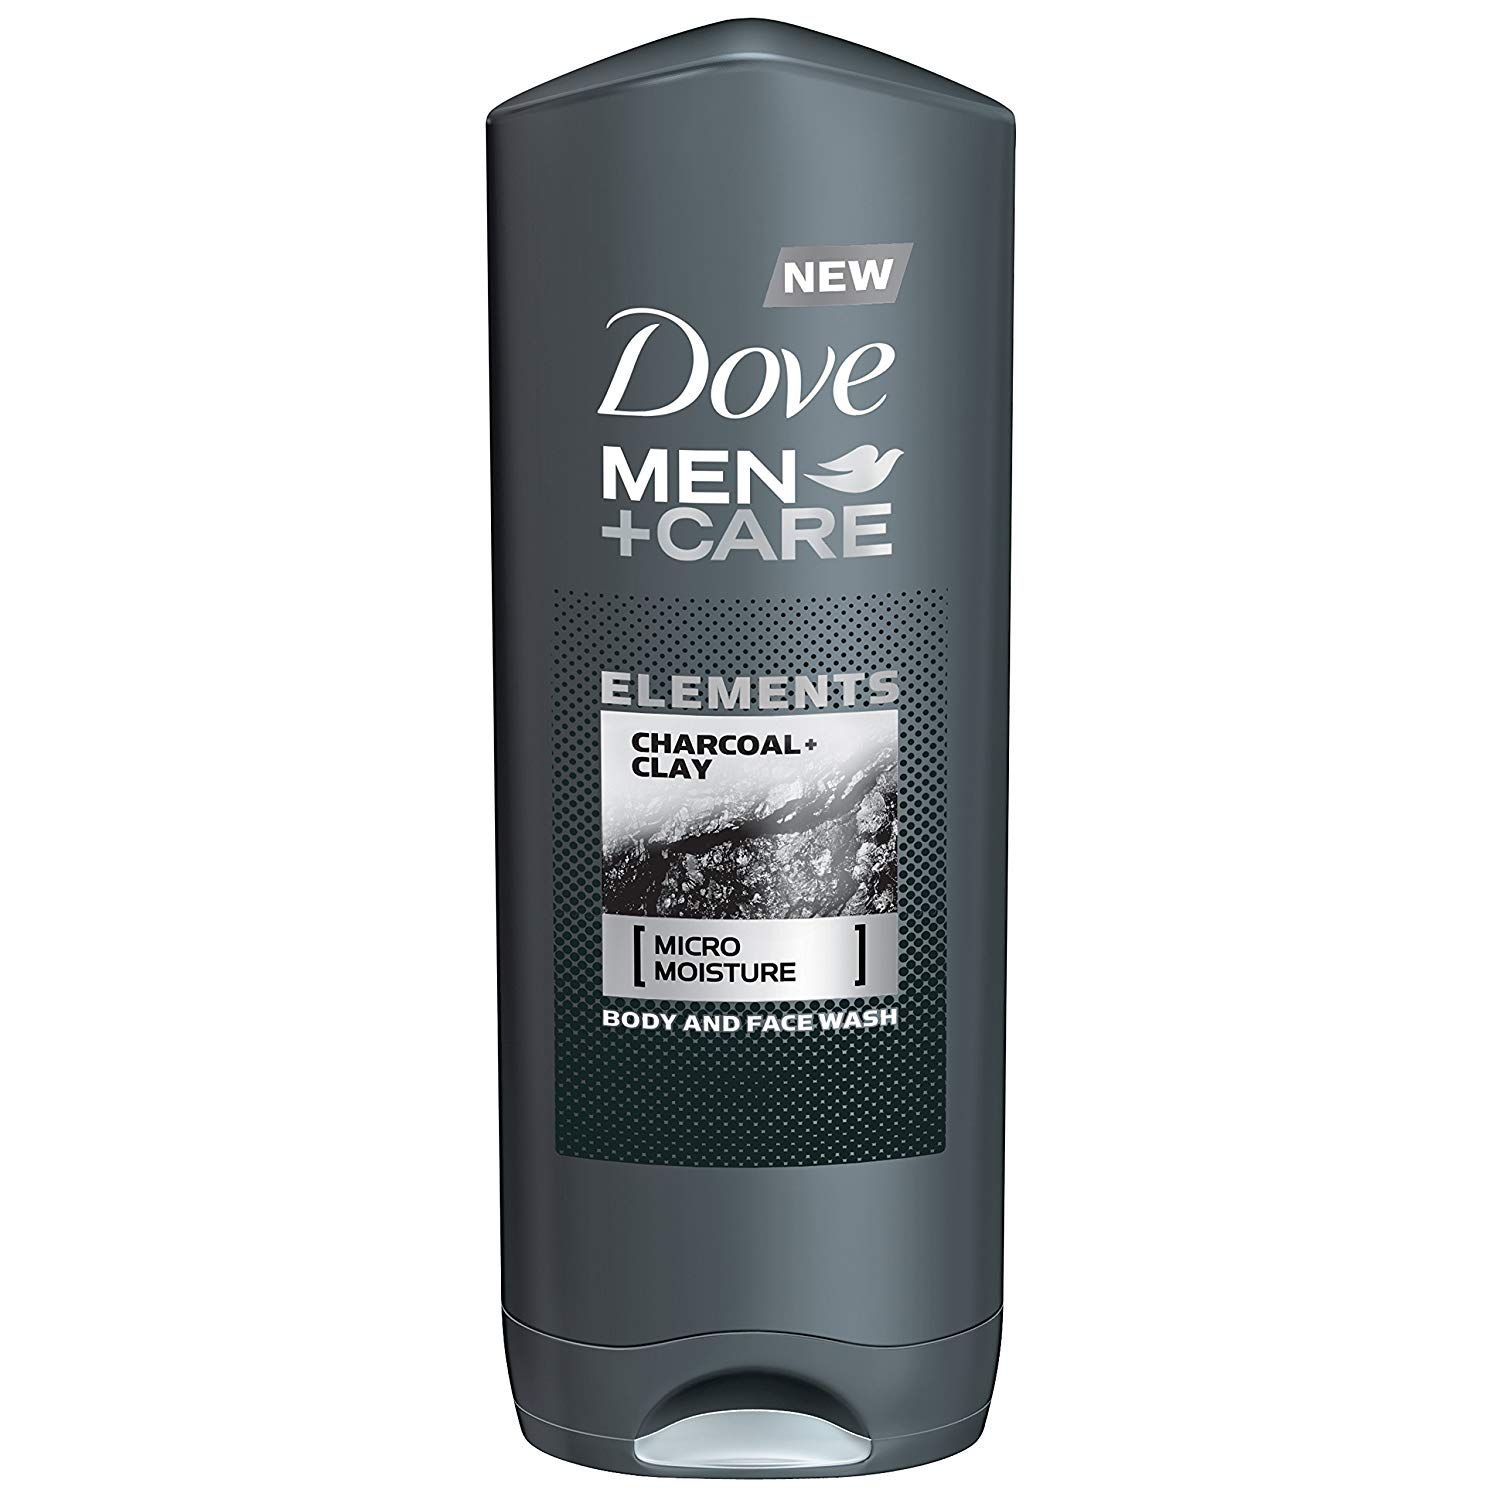 Dove Men + Care Elements Body Wash, Charcoal and Clay, 13.5 Ounce(Pack of 3)